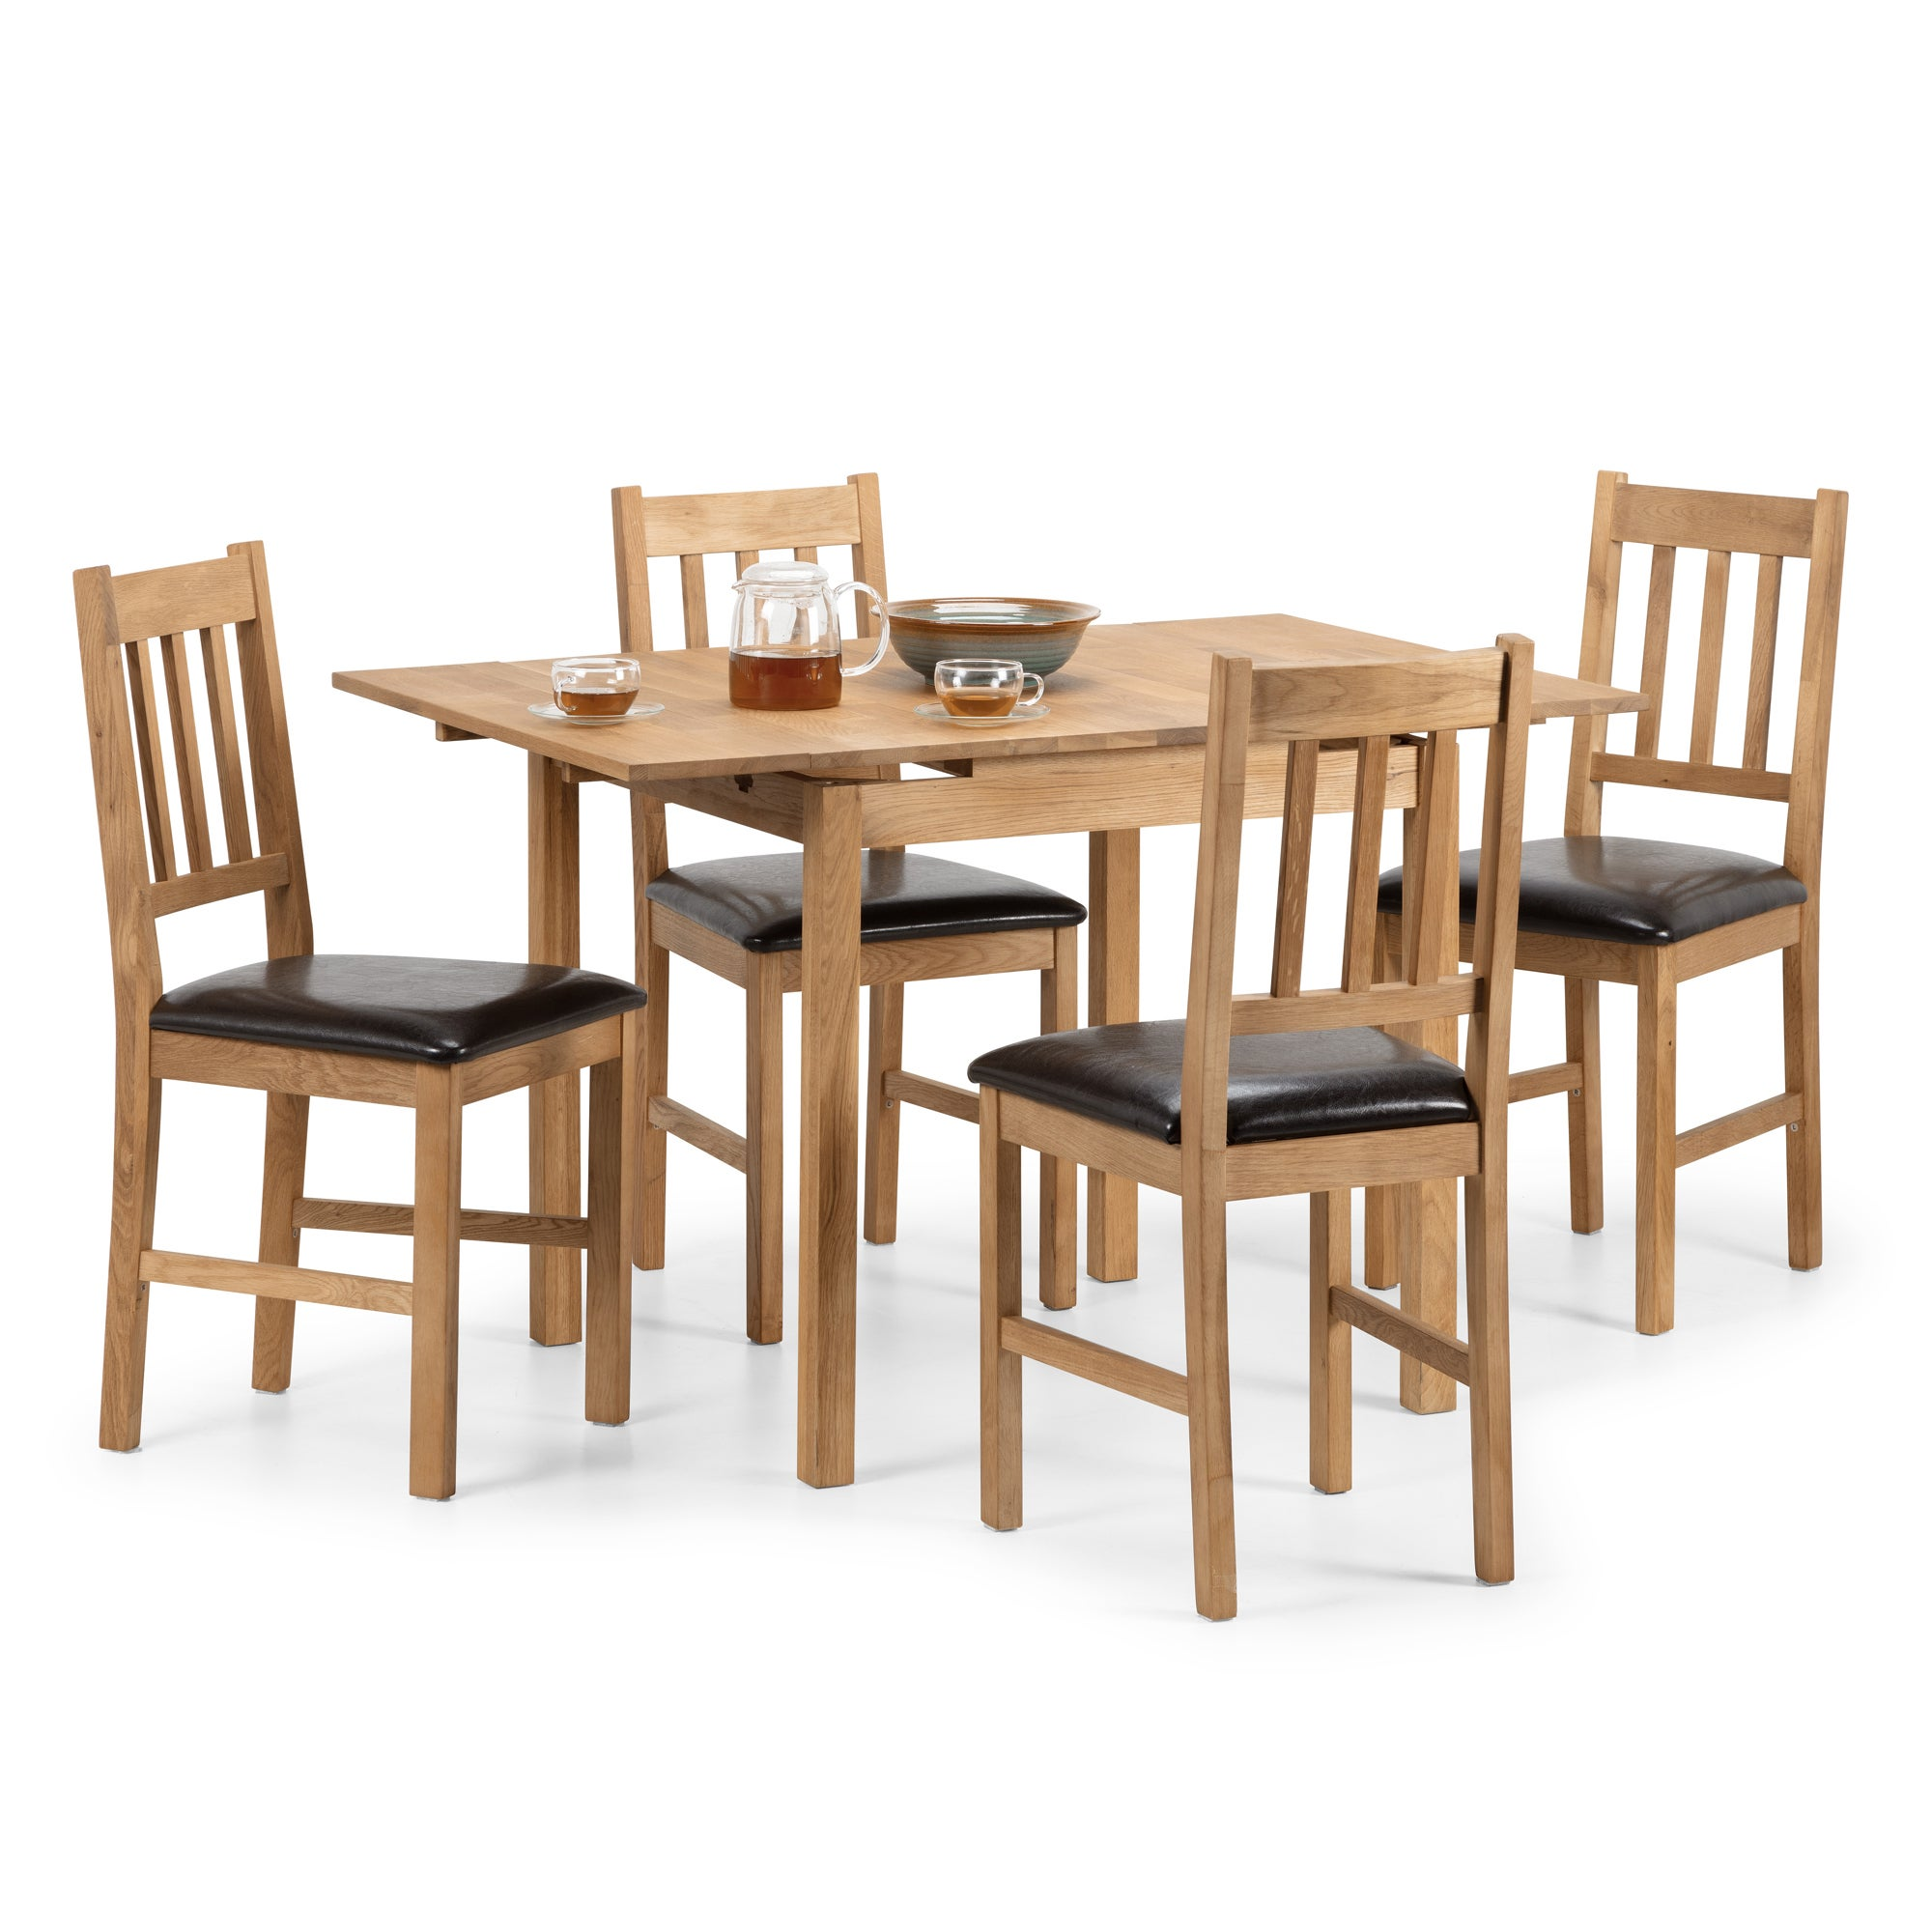 Coxmoor Extending Dining Table with 4 Chairs Oak (Brown)